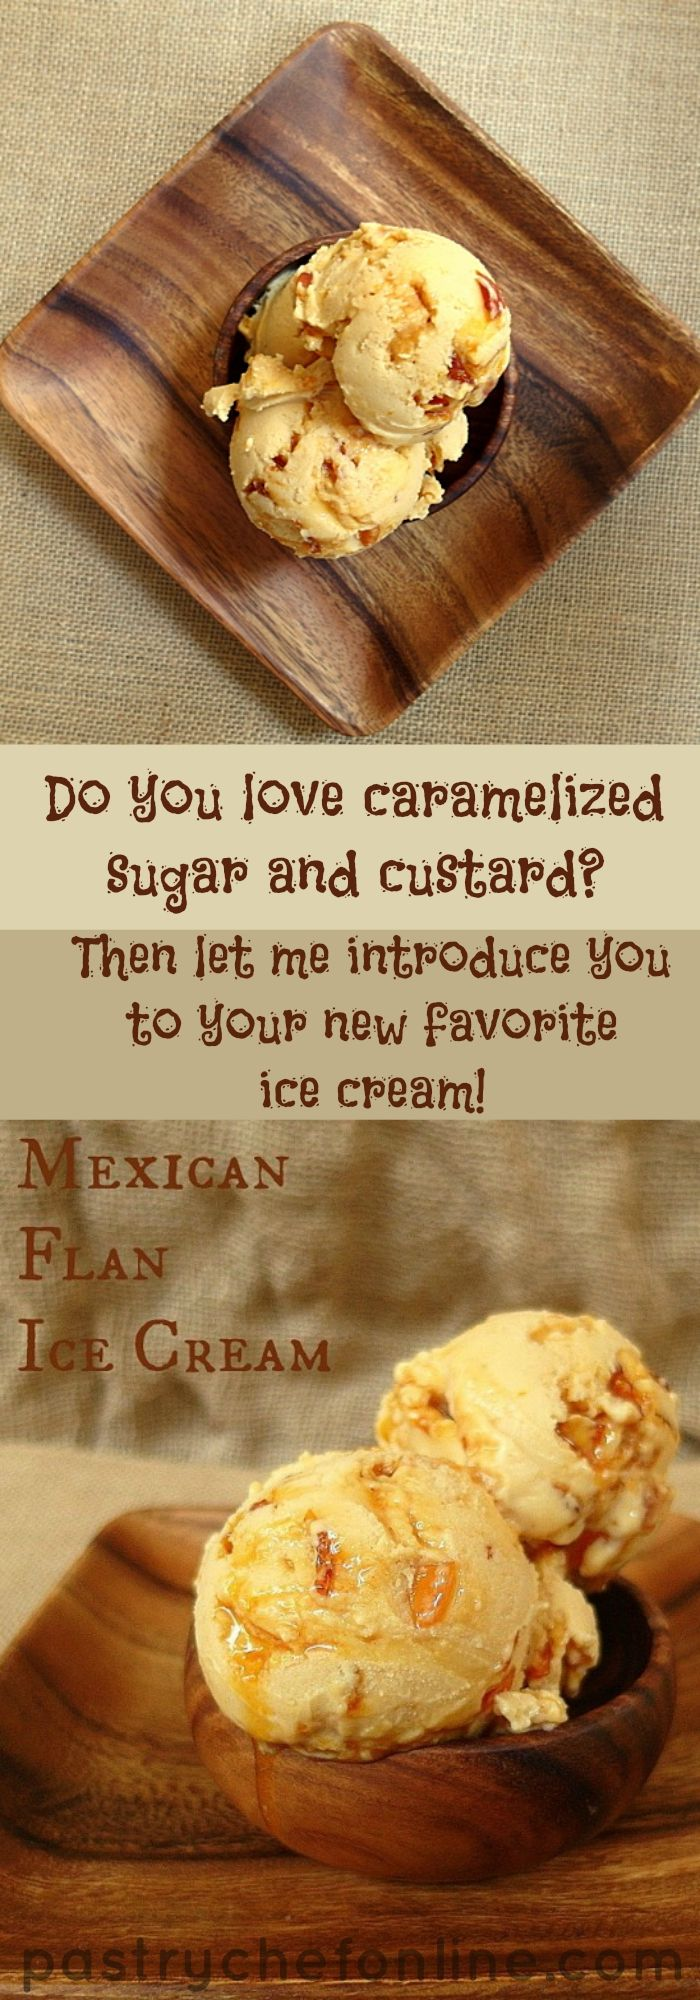 Mexican Flan Ice Cream takes a traditional Mexican Flan custard and churns it into a creamy, frozen base. Mix in shards of caramelized sugar that melt into thin caramel and you're in flan heaven. Rich and delicious, if you aren't a fan of the texture of flan but like the flavor, this just may be the dessert for you! | pastrychefonline.com